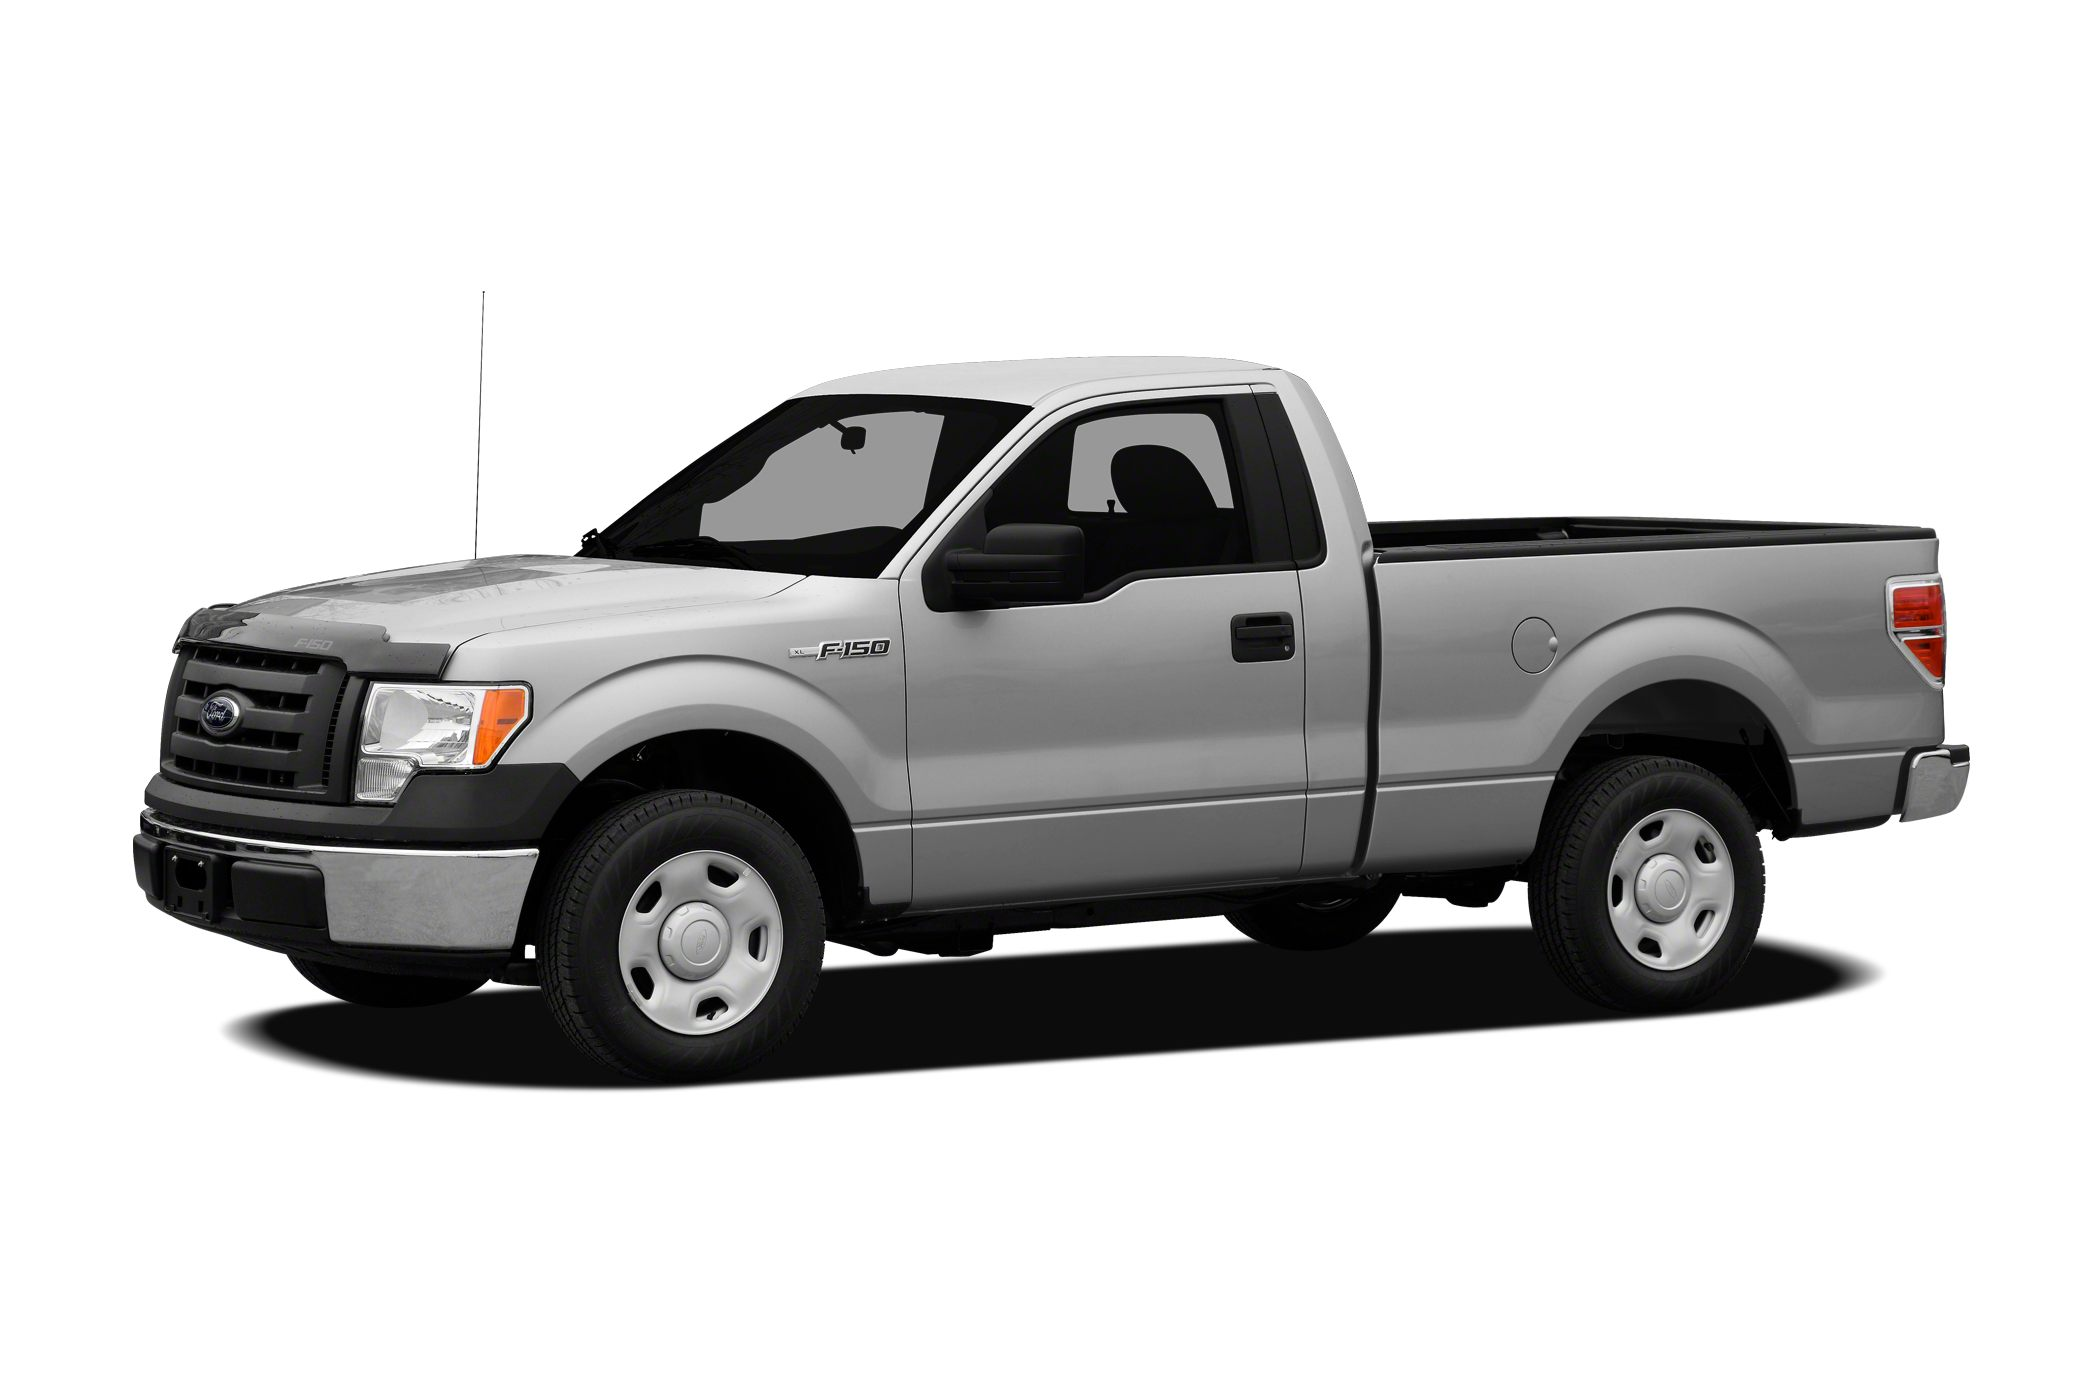 2012 Ford F150 XLT Crew Cab Pickup for sale in Sweetwater for $22,990 with 55,078 miles.